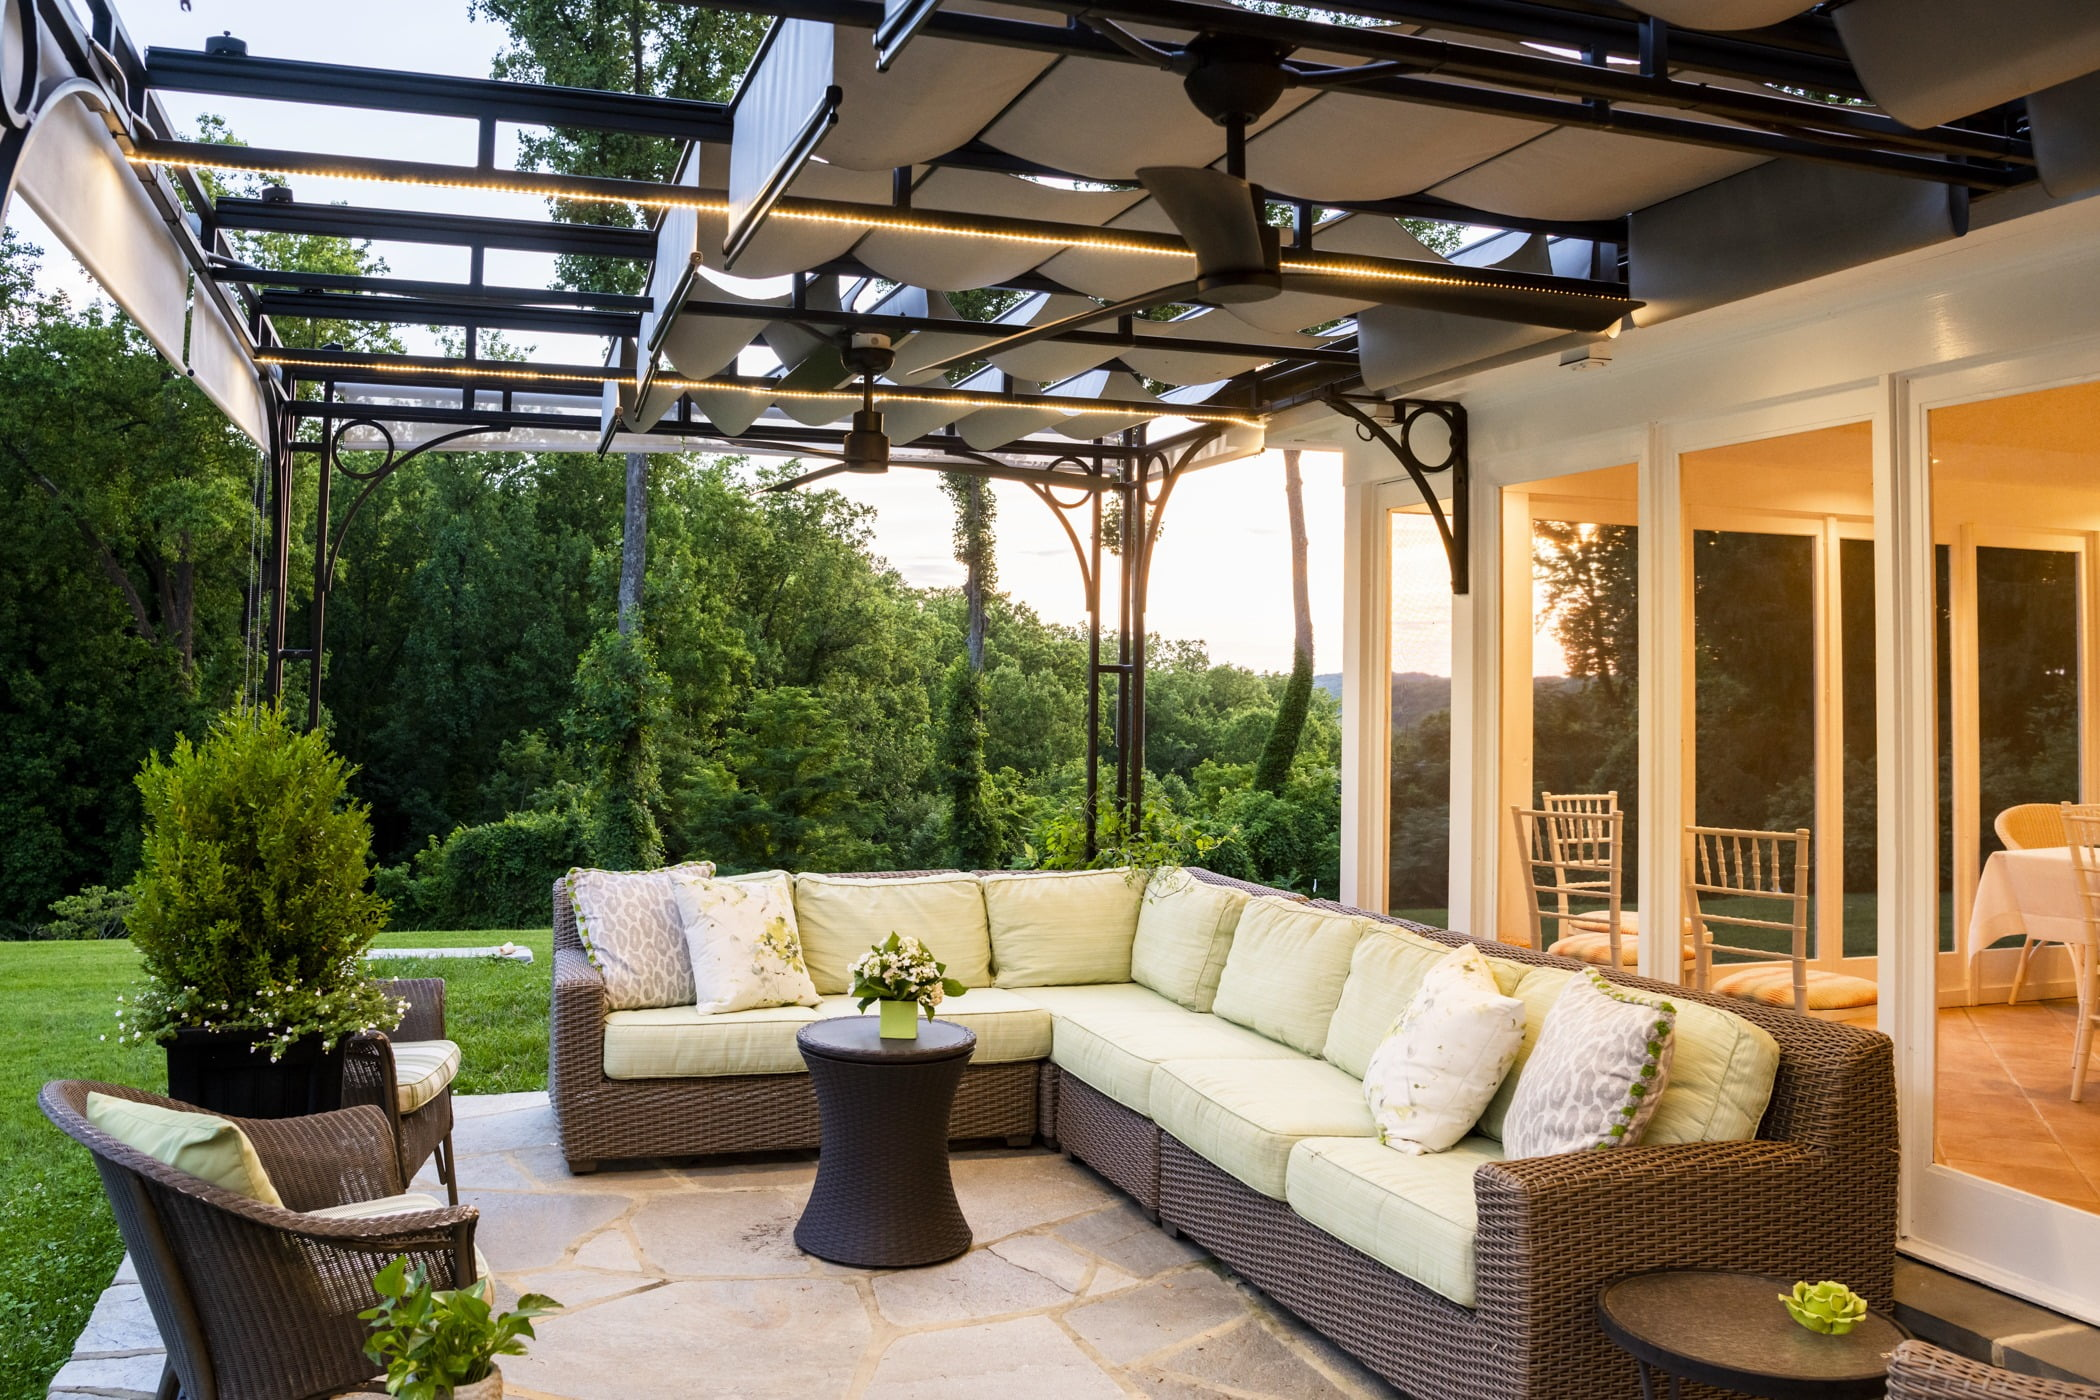 Luxury outdoor pool house space with an outdoor couch and retractable ceiling (2)